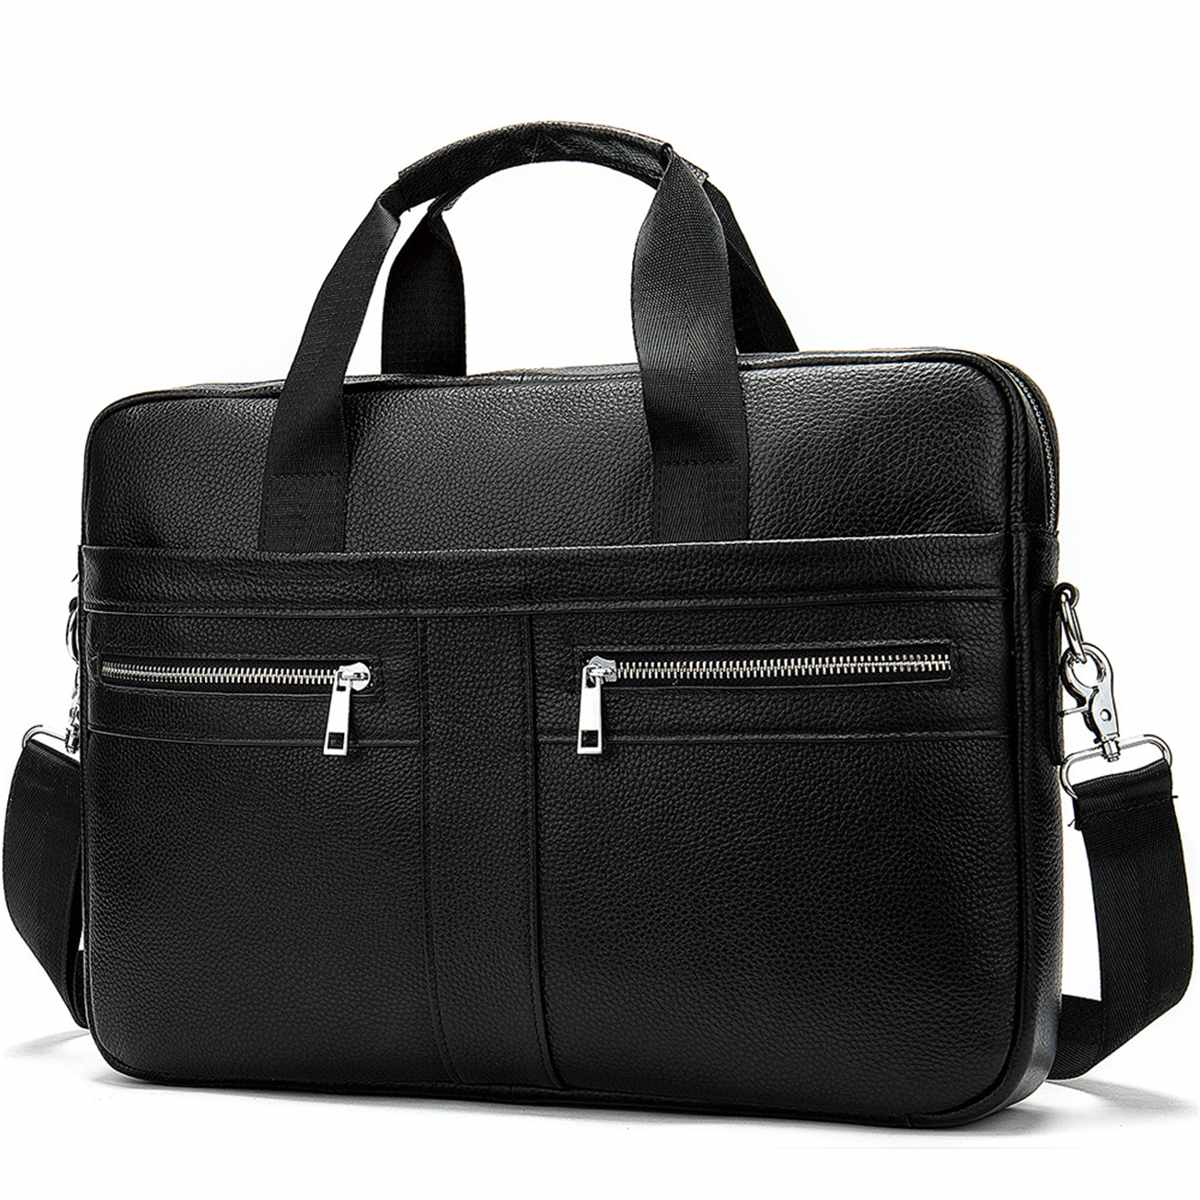 Business Men's Briefcases Men's Bag Genuine Leather Messenger Bags Laptop Bag Leather Briefcase Office Bags For Men 2019